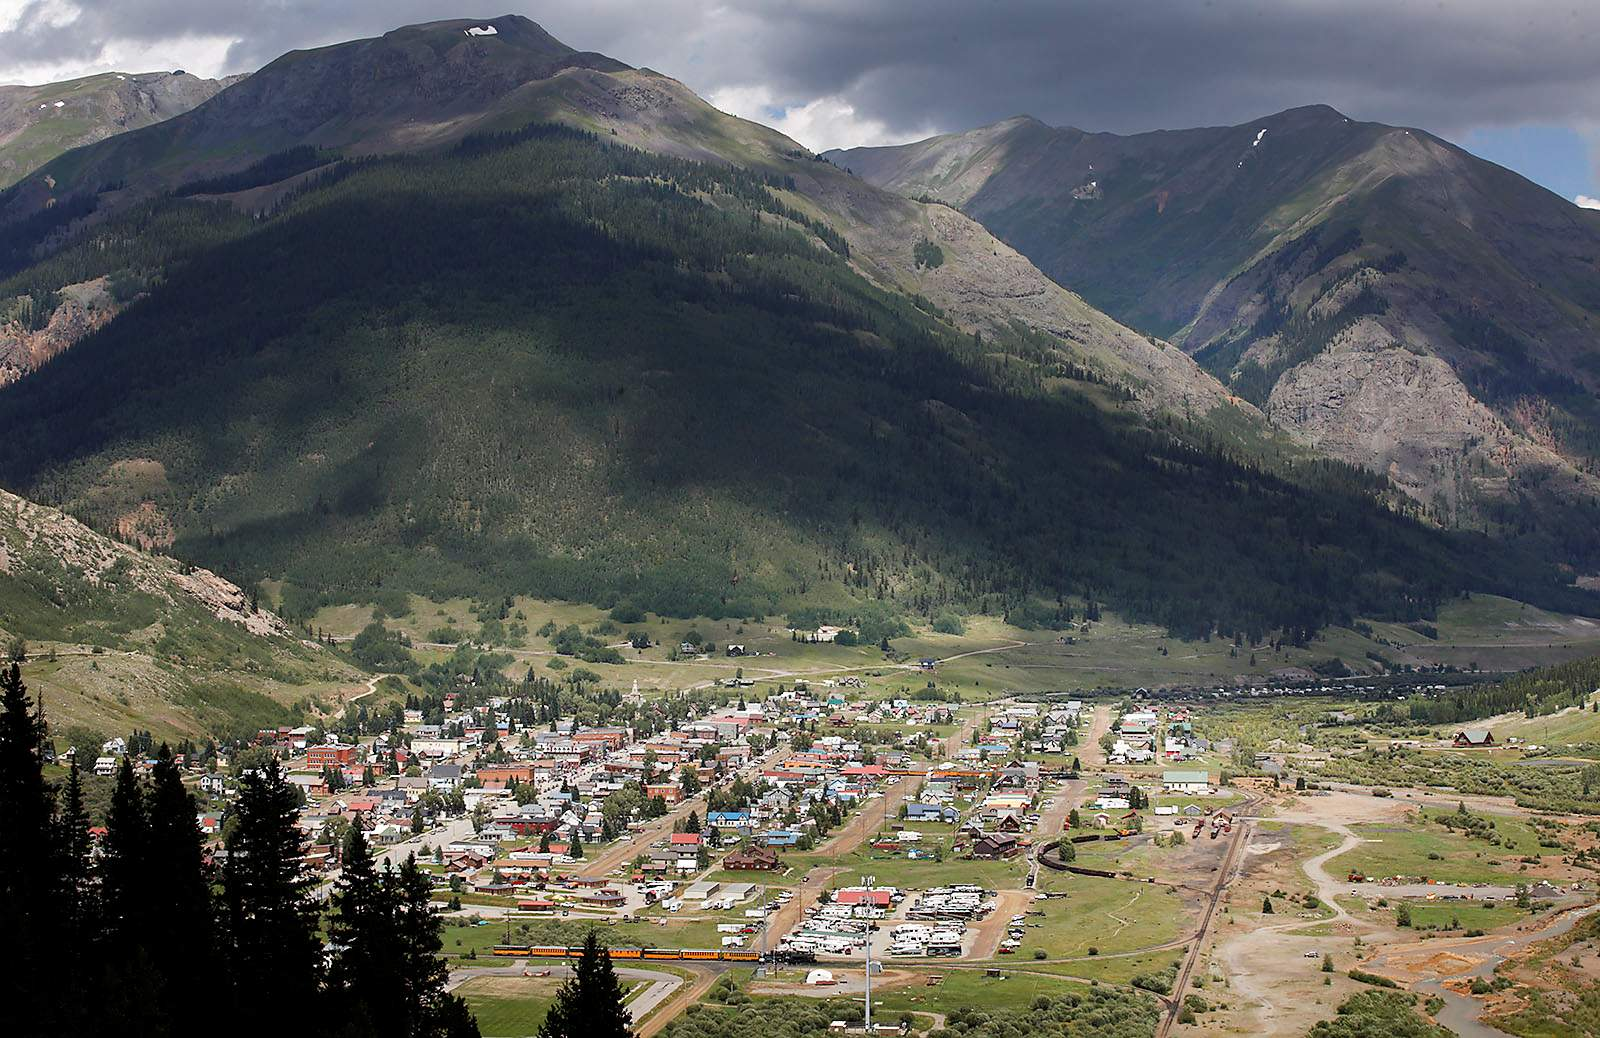 Lightning knocks out all internet, cellphone service in Silverton